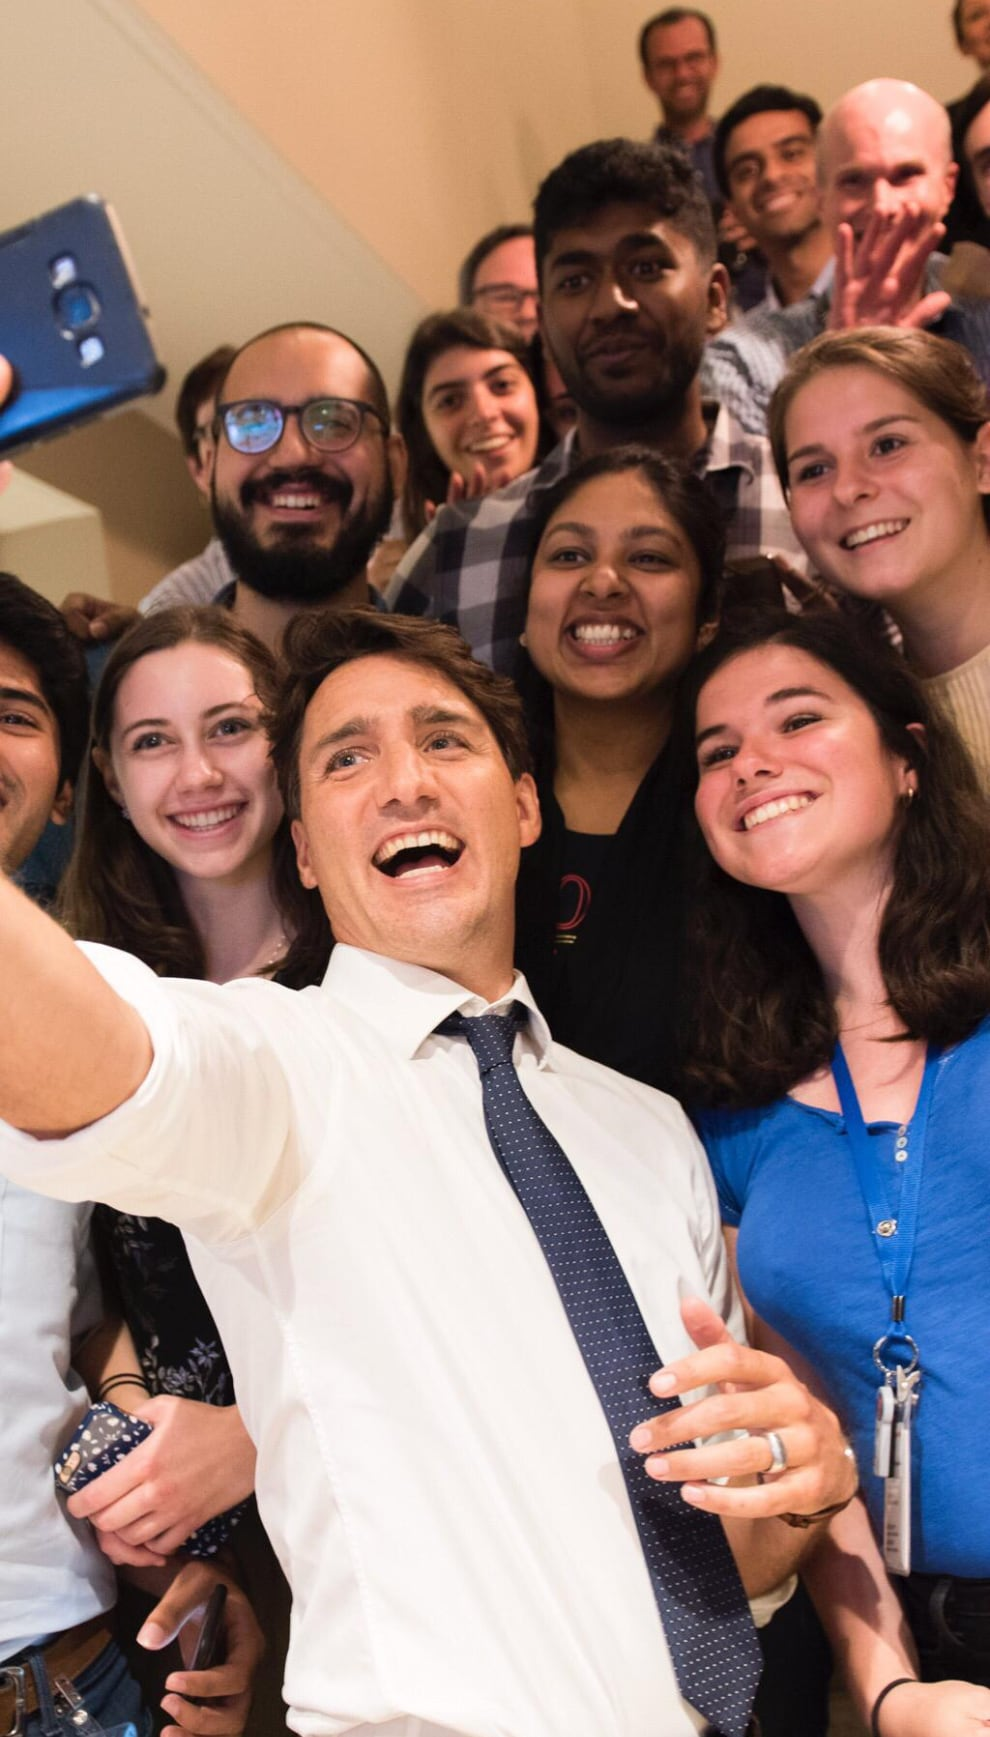 Prime Minister Trudeau takes times at MDA for some selfies